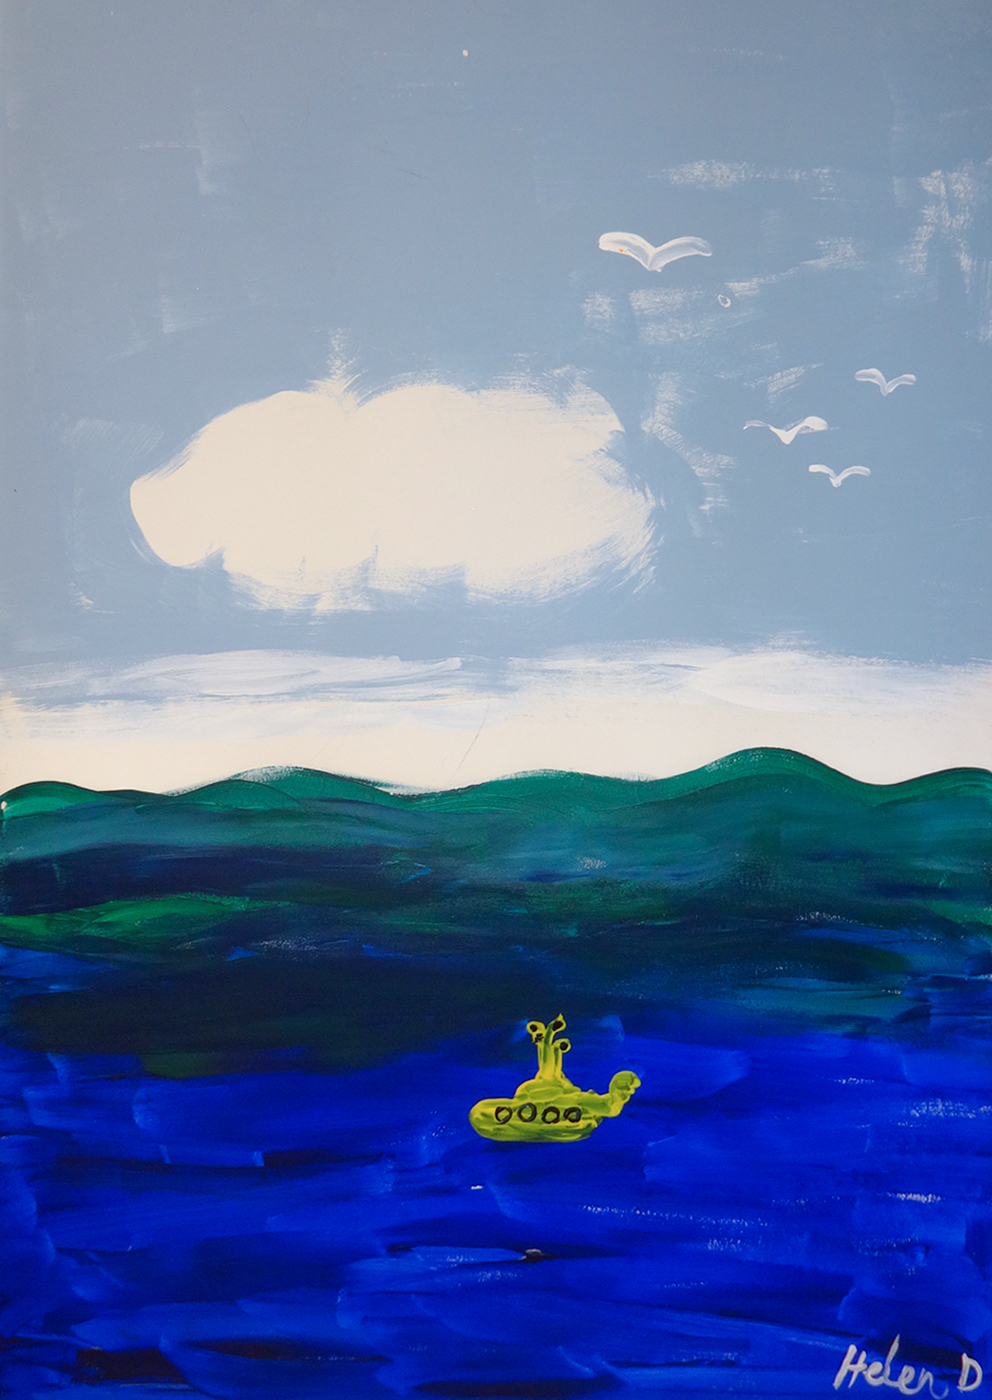 """""""We all live in a yellow submarine"""" - Helen, United Kingdom, Norway"""